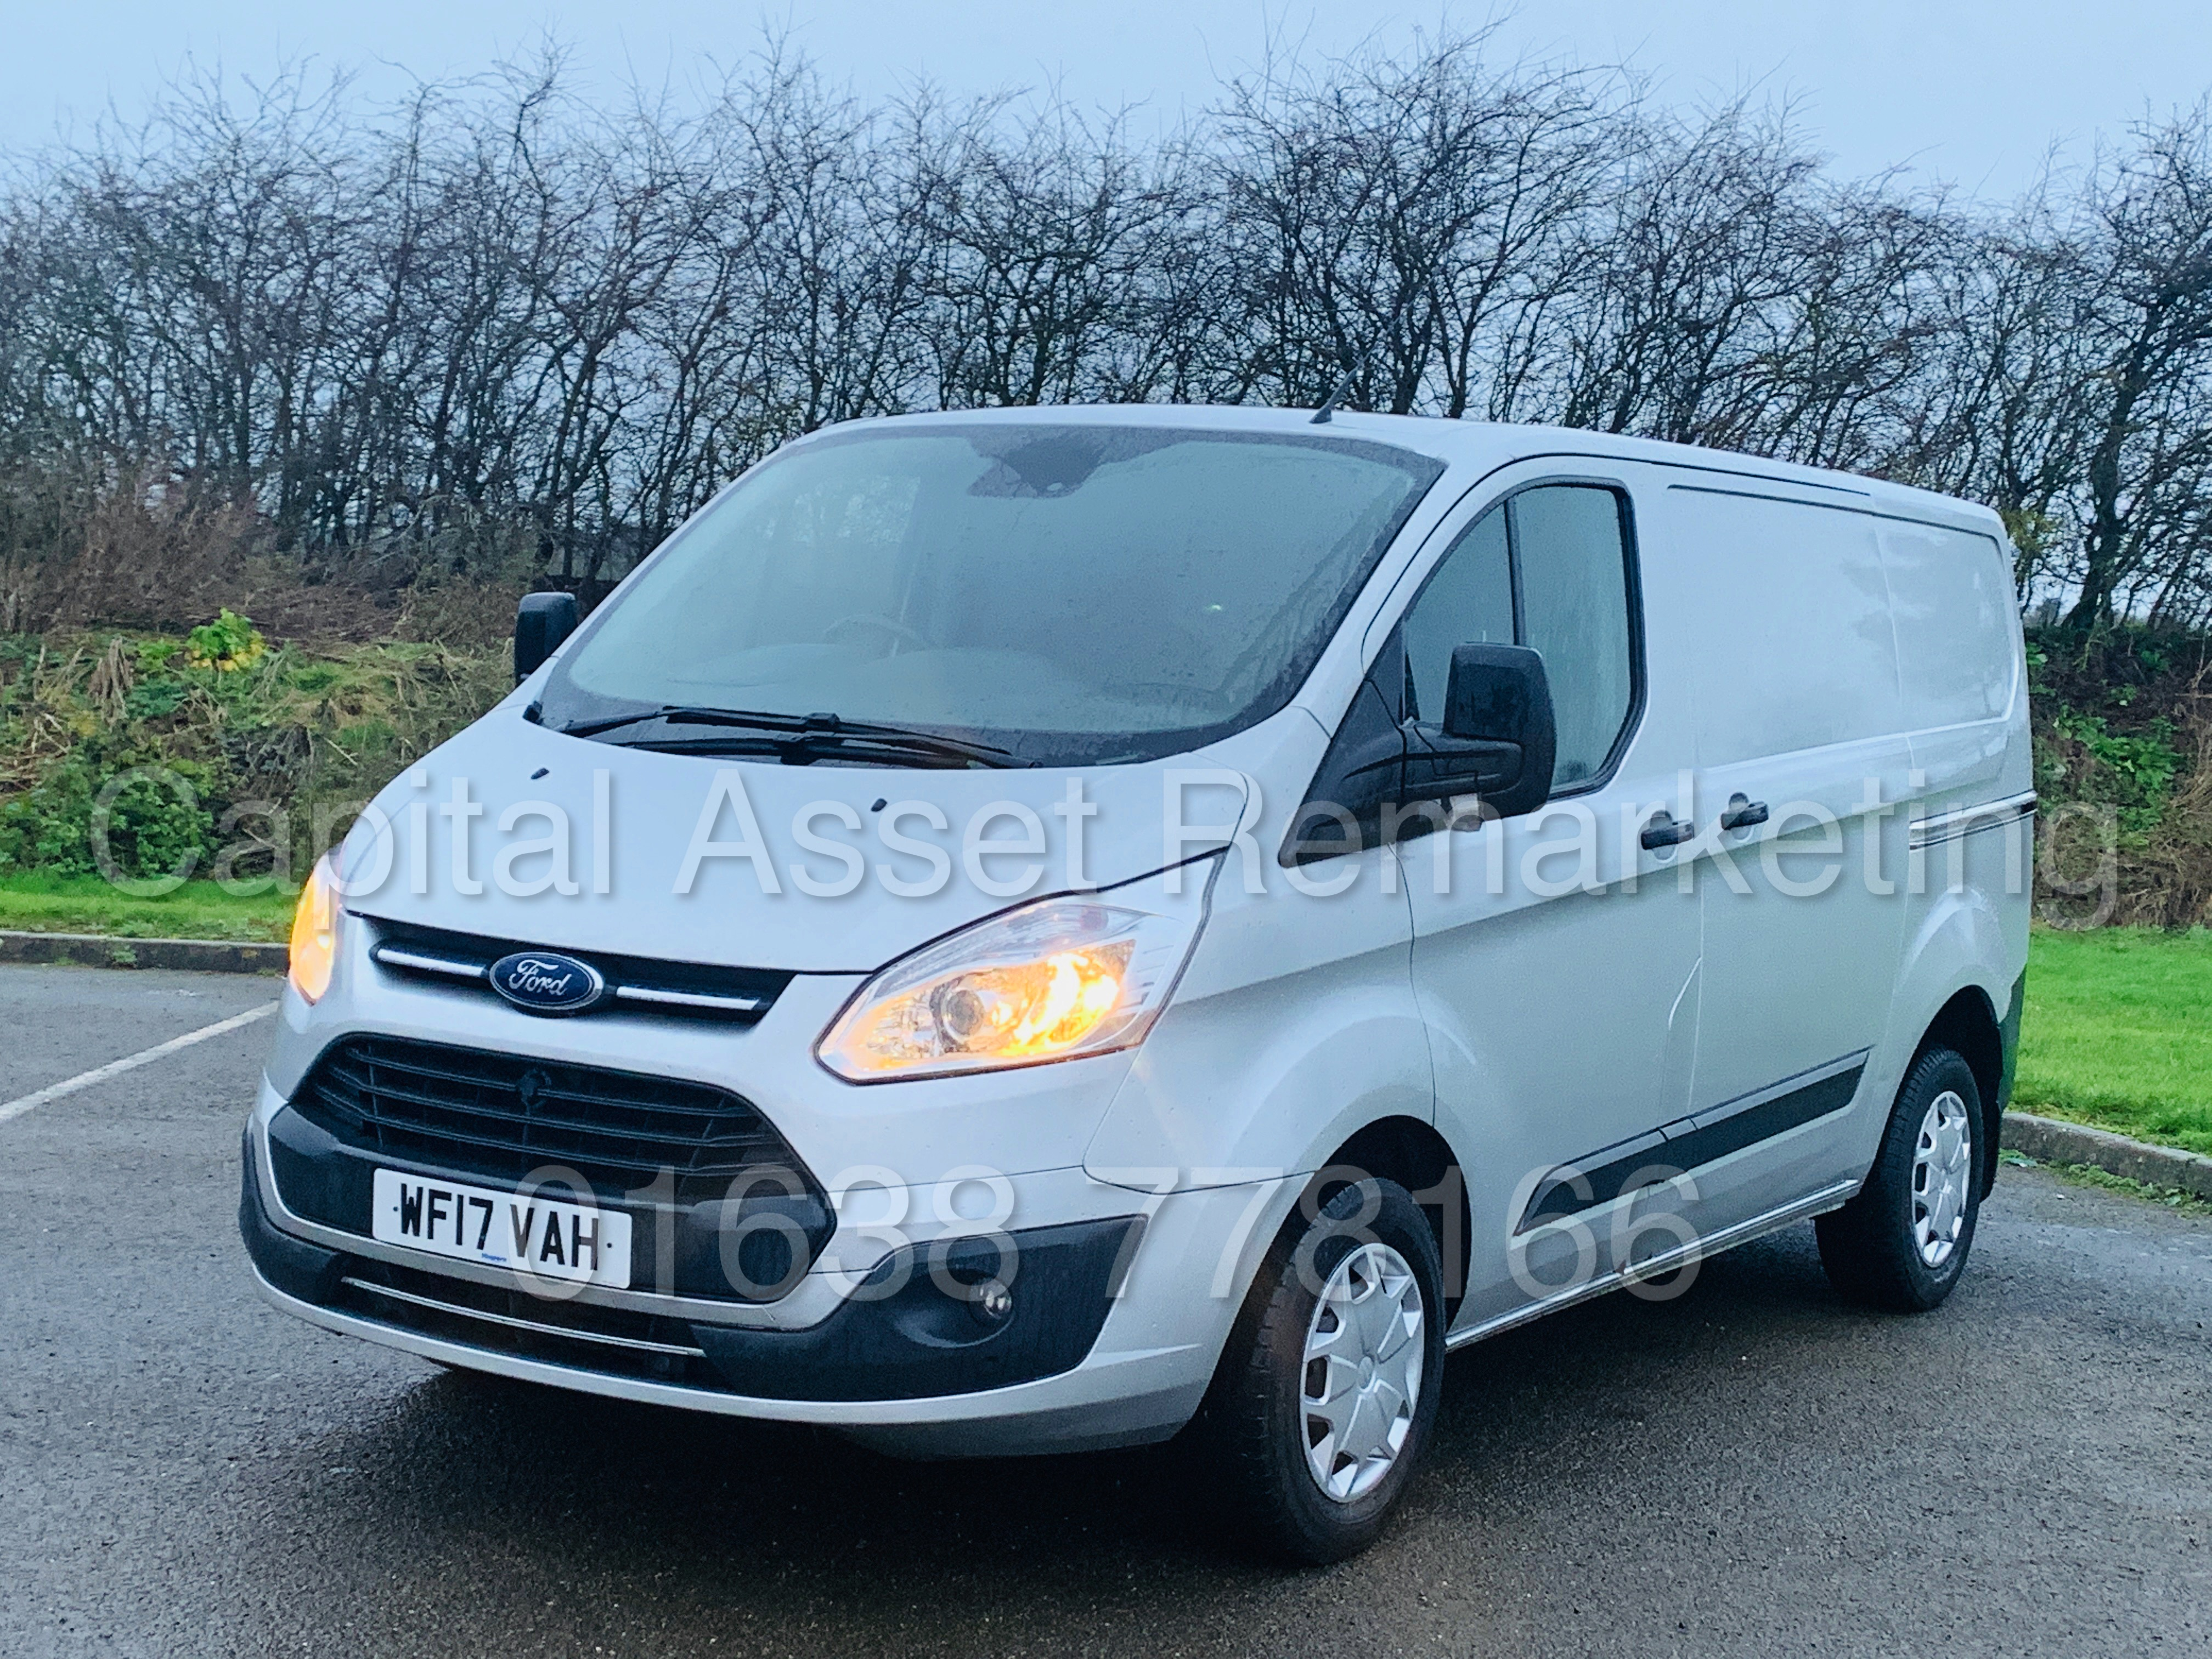 (On Sale) FORD TRANSIT *TREND* 290 SWB (2017 - EURO 6 / AD-BLUE) '2.0 TDCI - 130 BHP - 6 SPEED' - Image 5 of 41